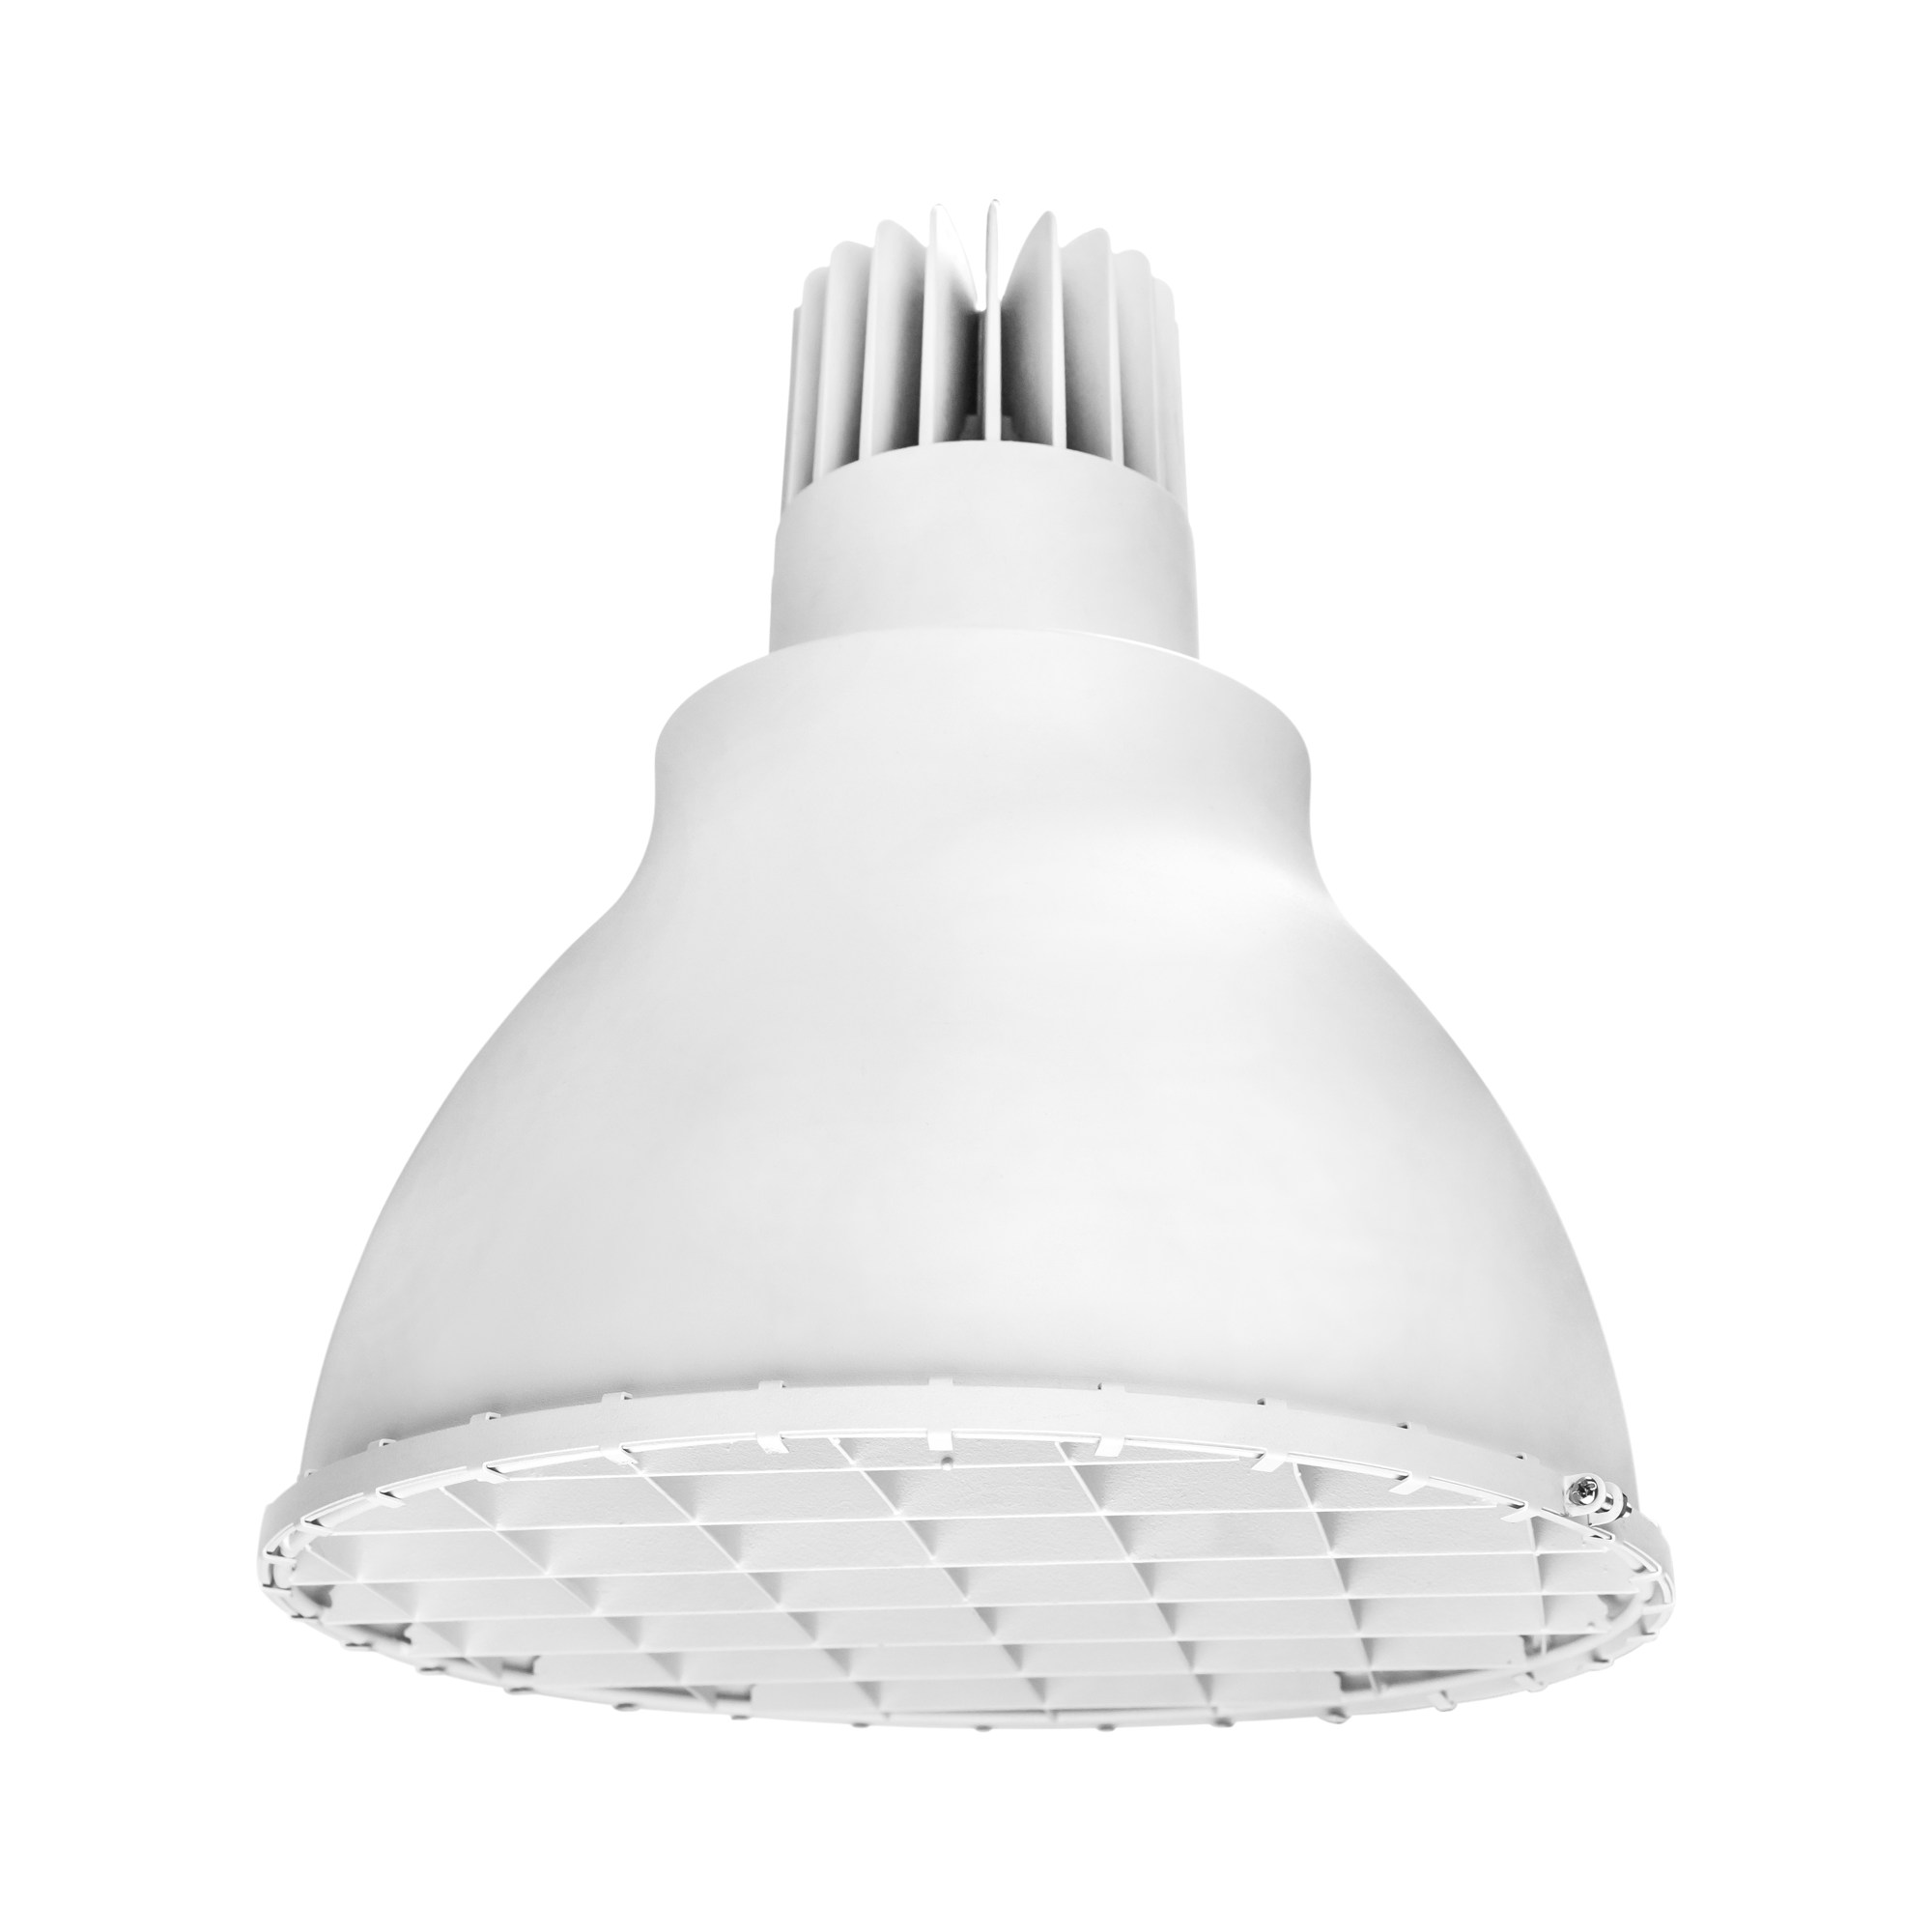 Led Unterbauleuchte Ip54 Spectrum Lycao 2 Led 230v 150w Ip54 90st Nw Highba